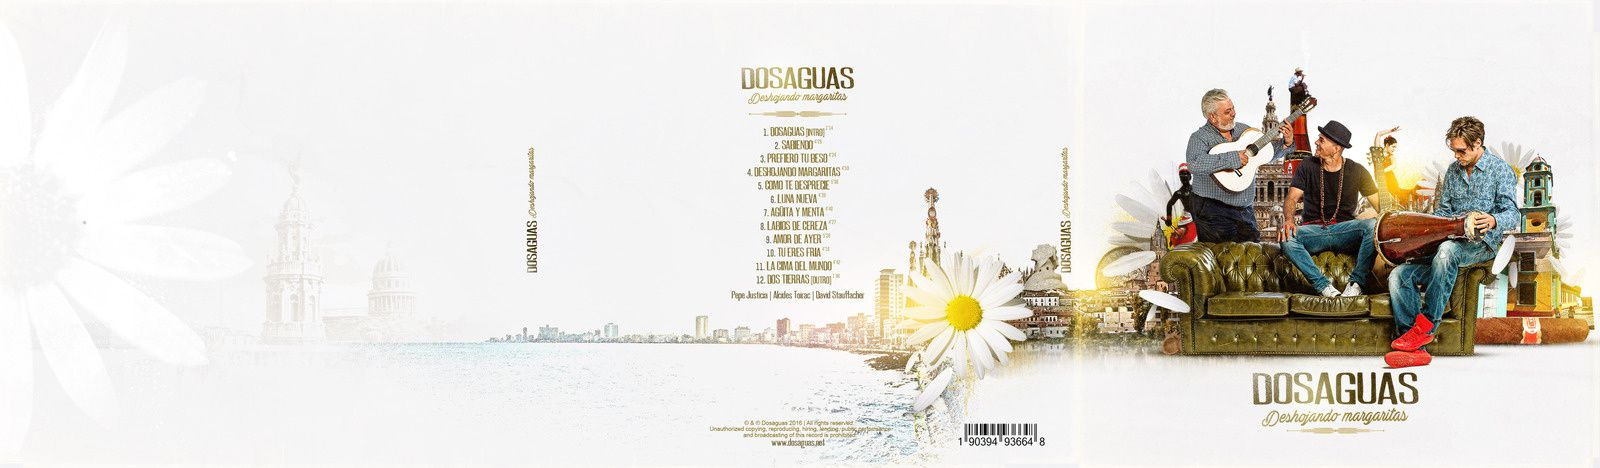 artwork for DOSAGUOS